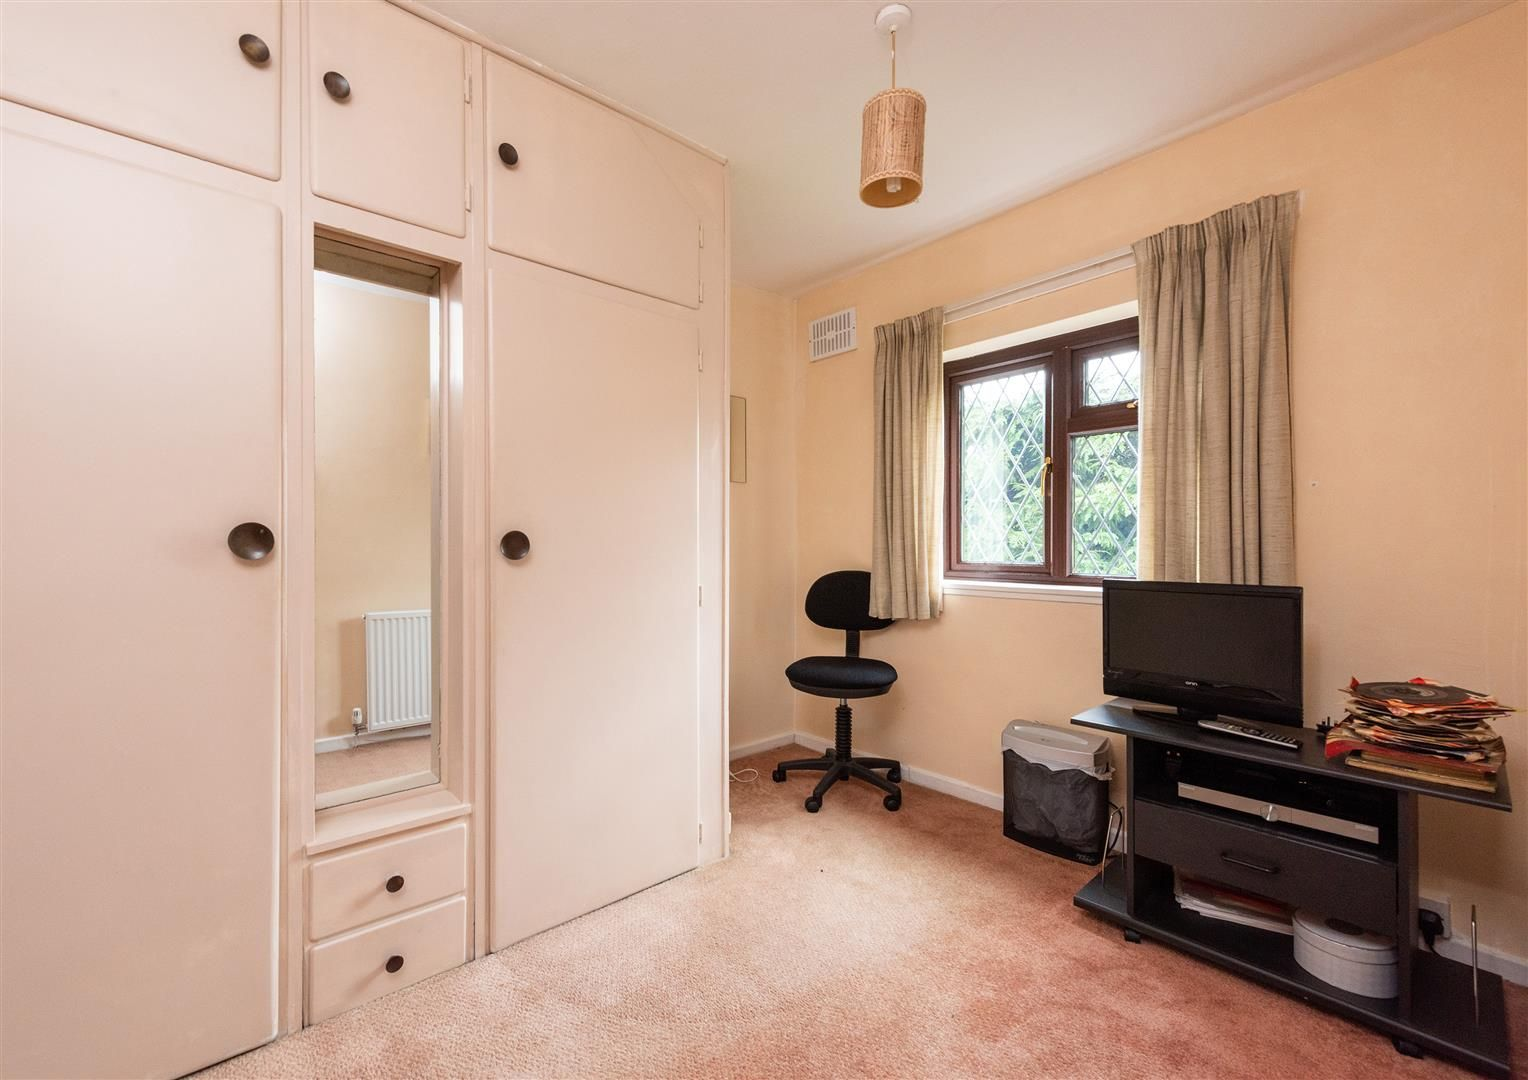 3 bed house for sale in Belbroughton  - Property Image 14